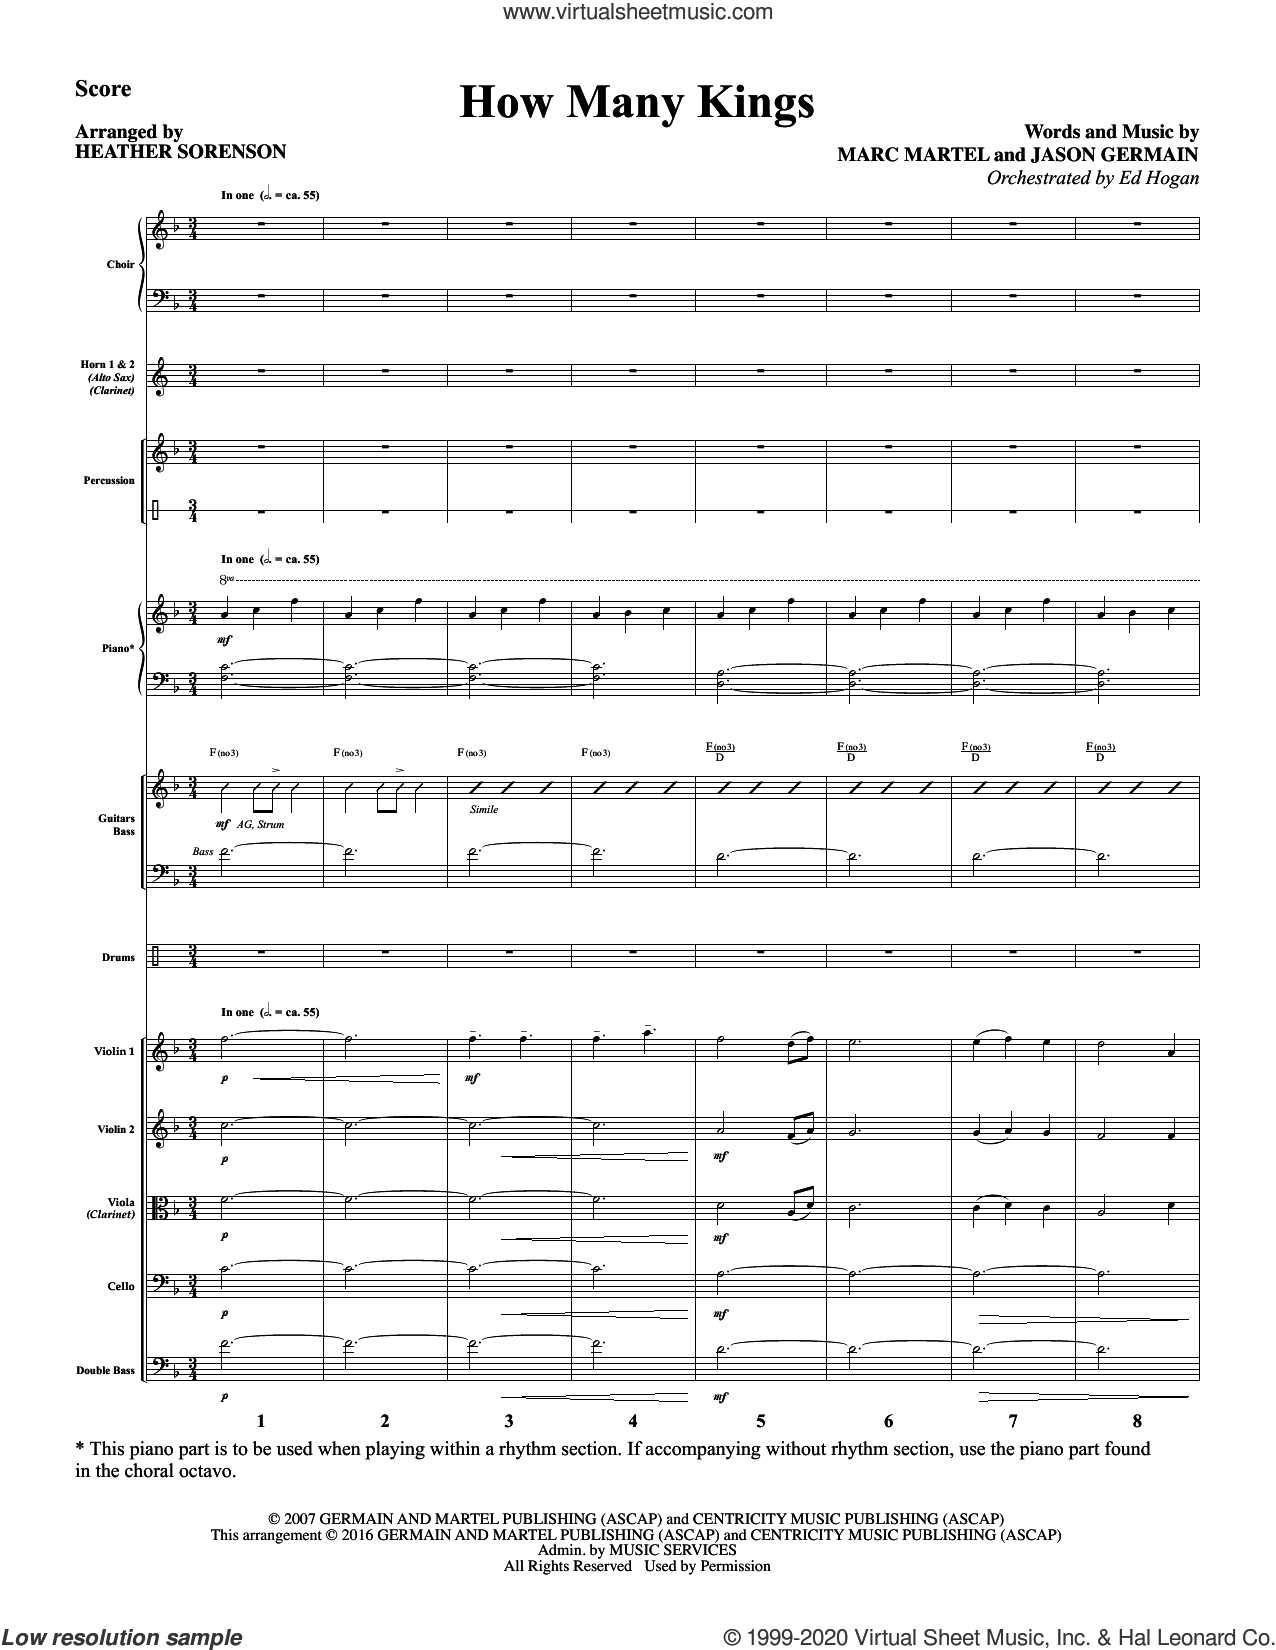 How Many Kings (COMPLETE) sheet music for orchestra/band by Heather Sorenson, Jason Germain and Marc Martel, intermediate skill level